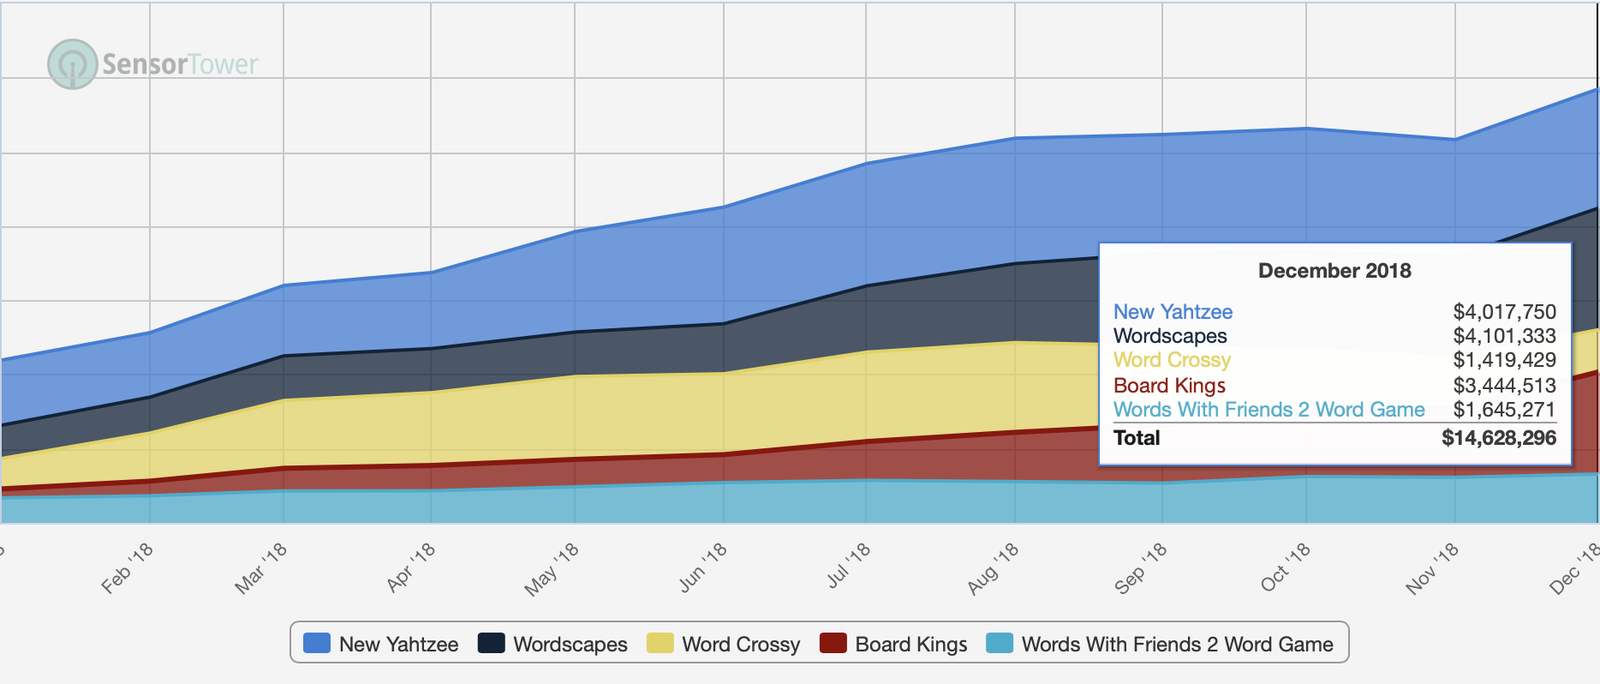 Board and Word games grew its IAP revenues tremendously during the 2018. Keep in mind that ad revenues account for additional 25% to 75% of revenues depending a game.